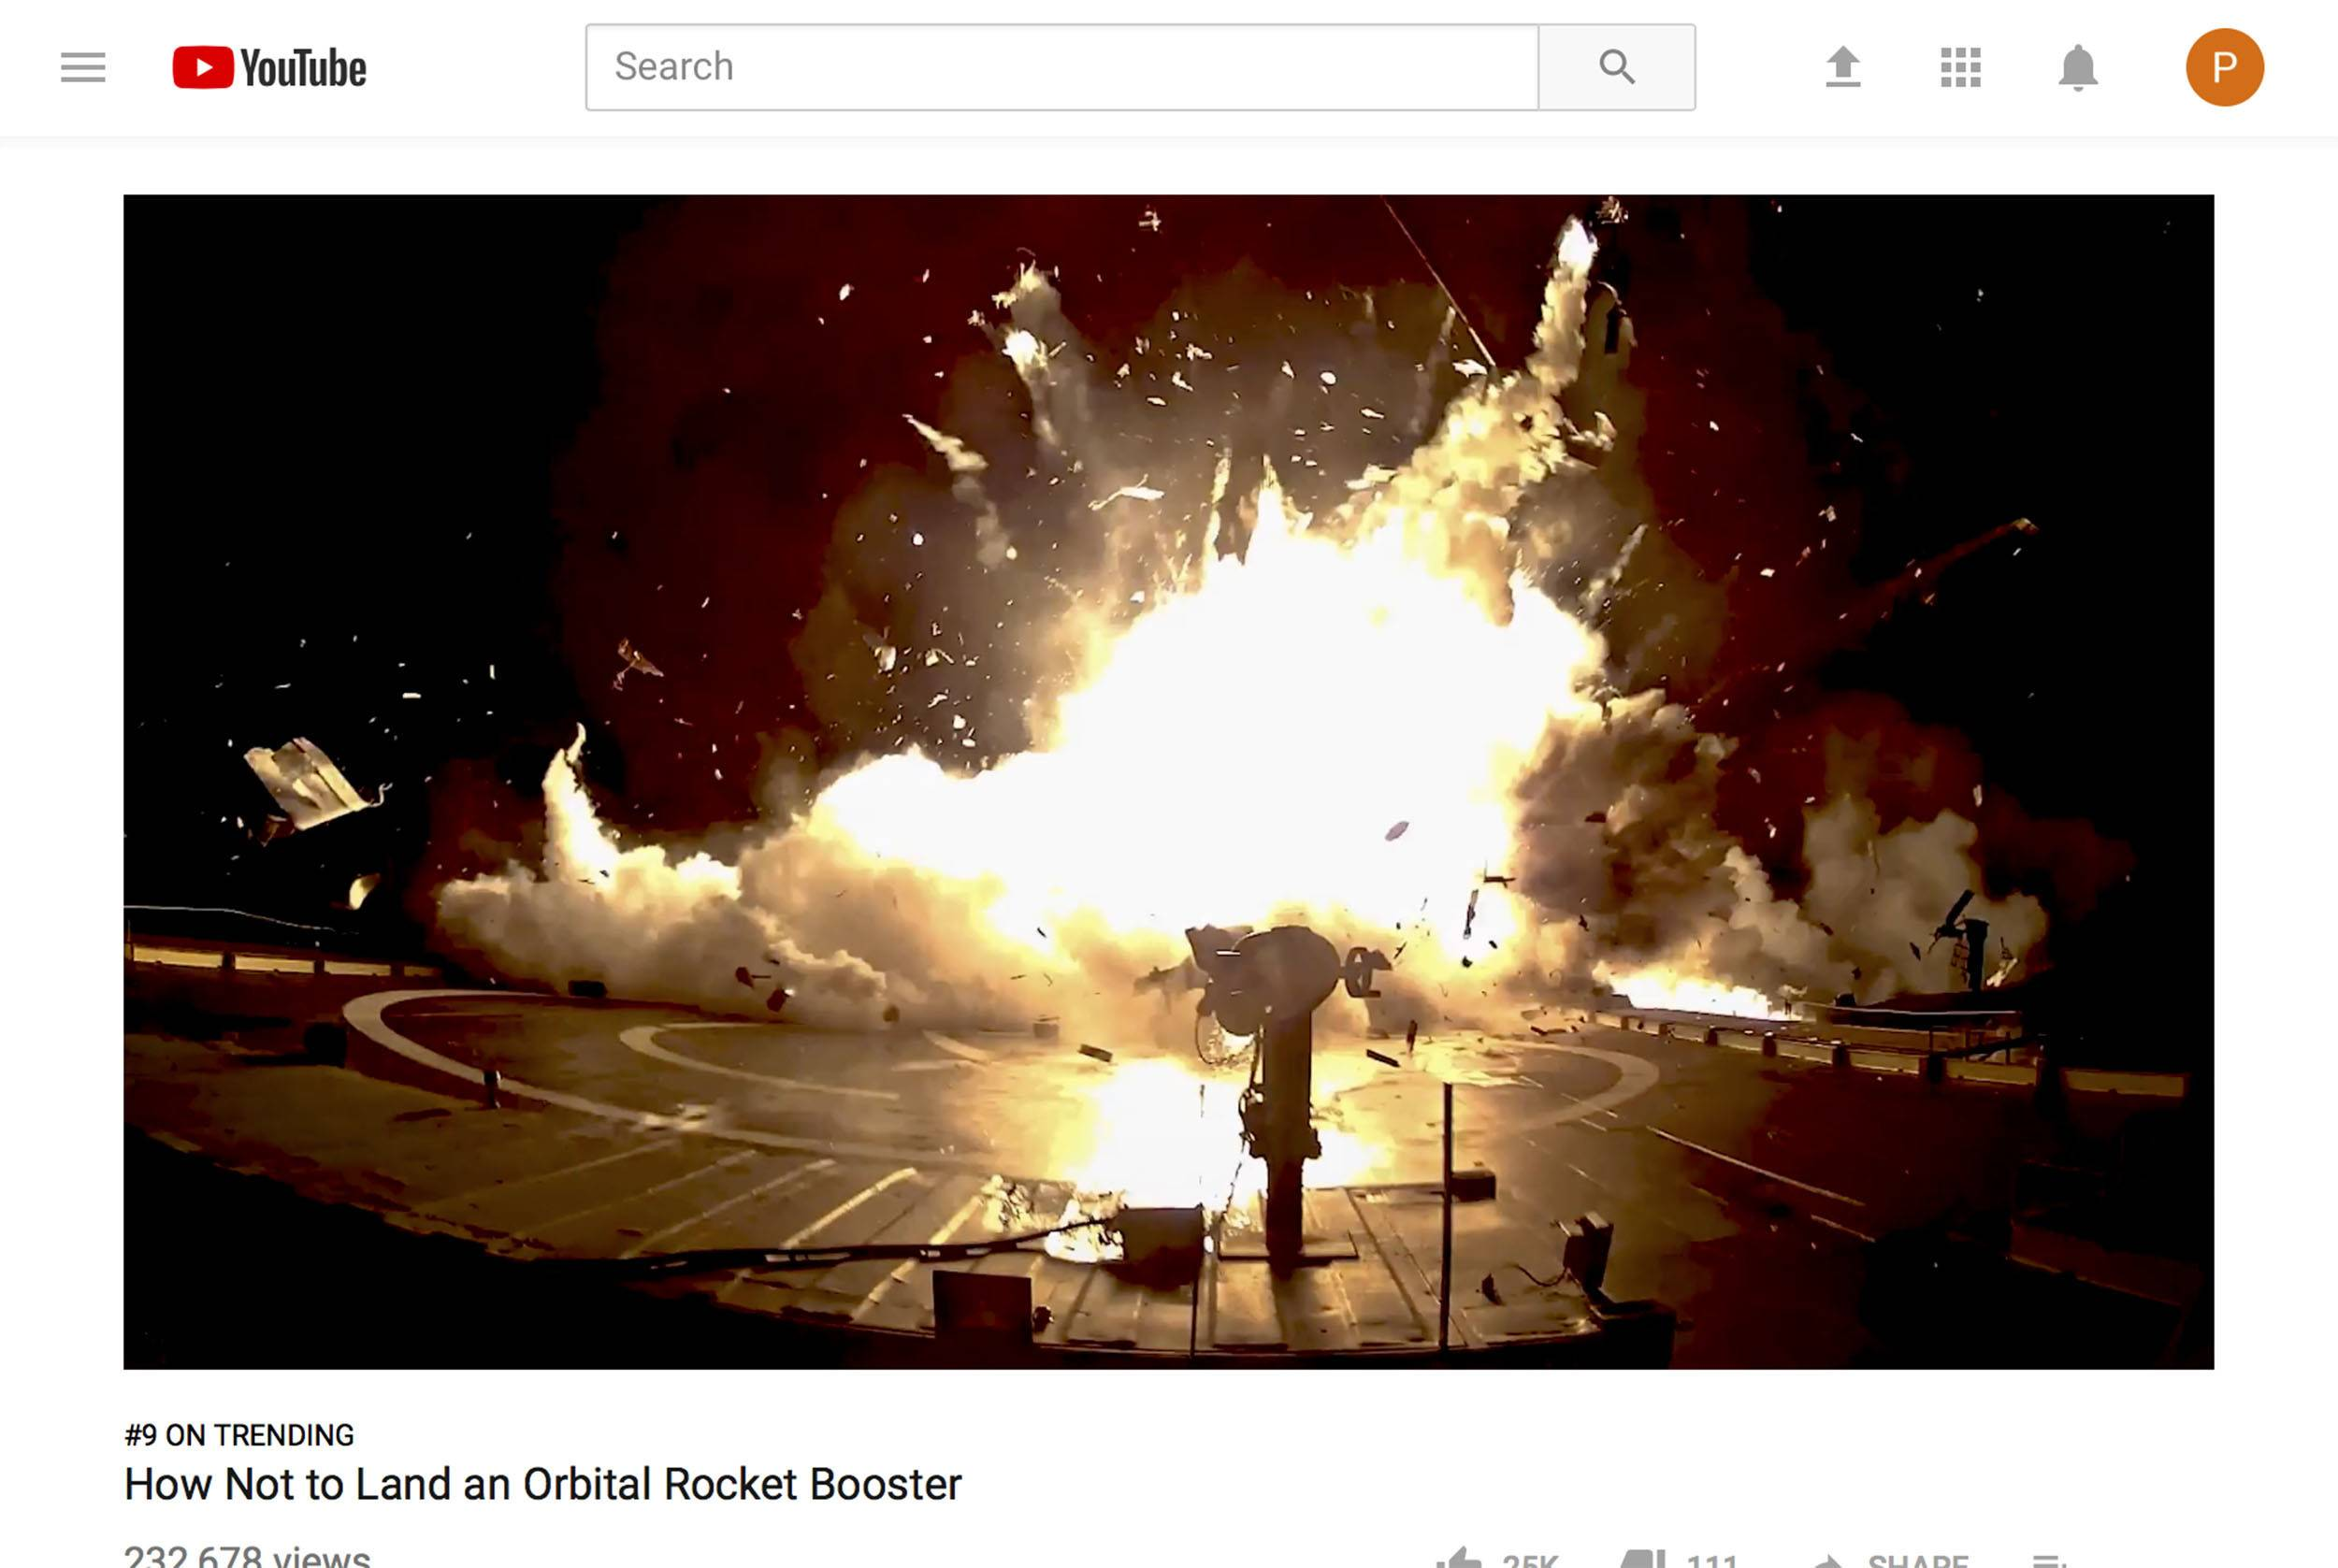 This image from a video posted on YouTube by SpaceX on Sept. 14, 2017 shows one of the unsuccessful landings of the company's orbital rocket boosters.